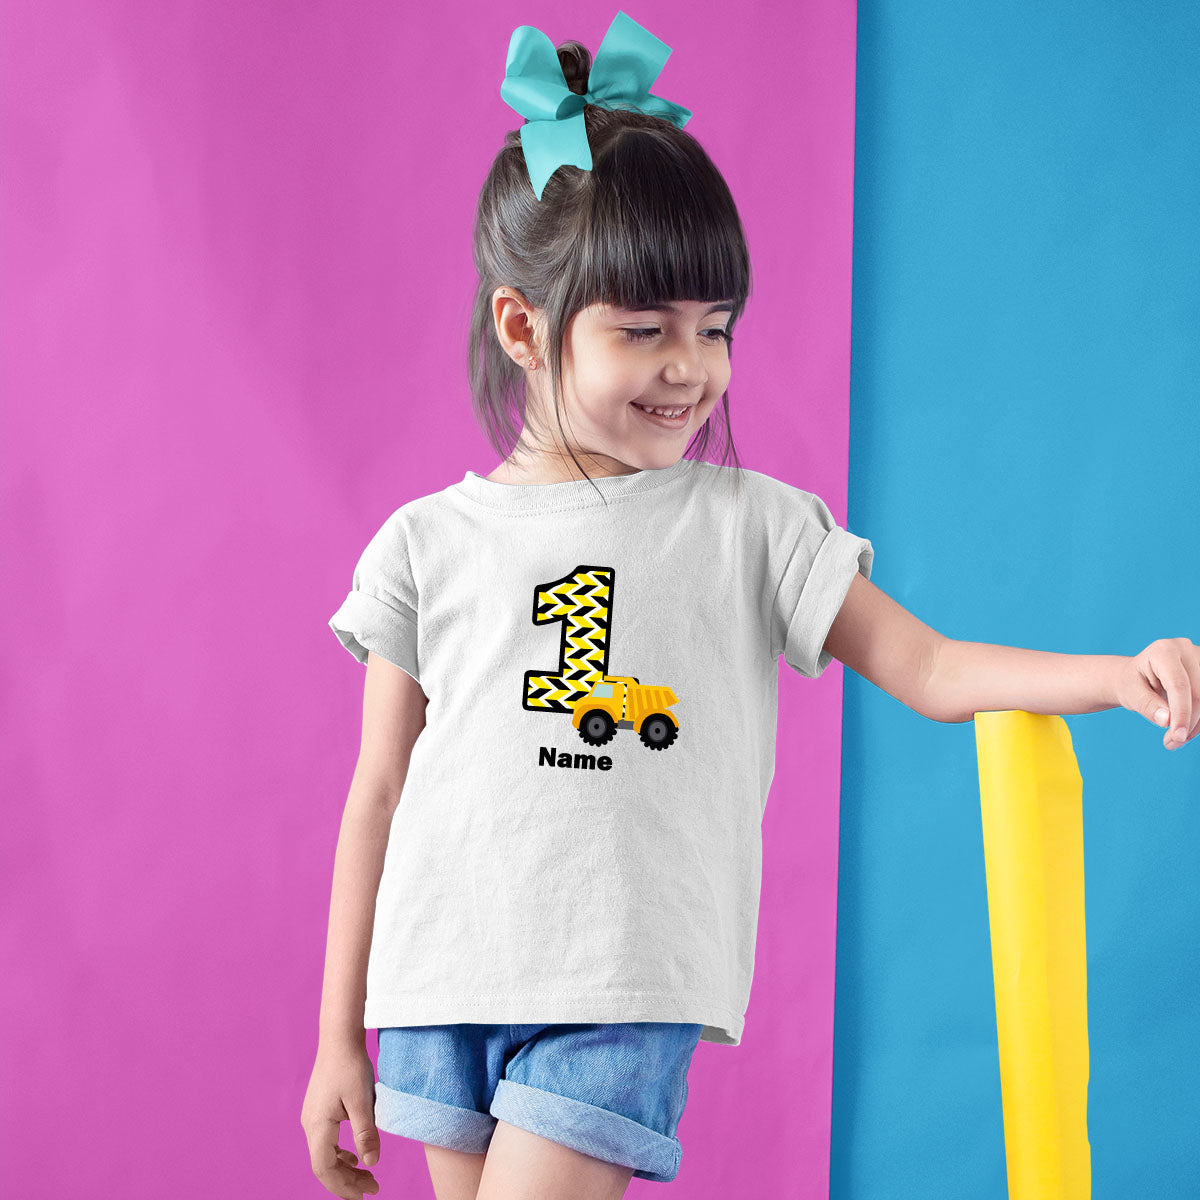 Sprinklecart Unique 1st Birthday Tee | Custom Name and Age Printed Construction Vehicle T Shirt